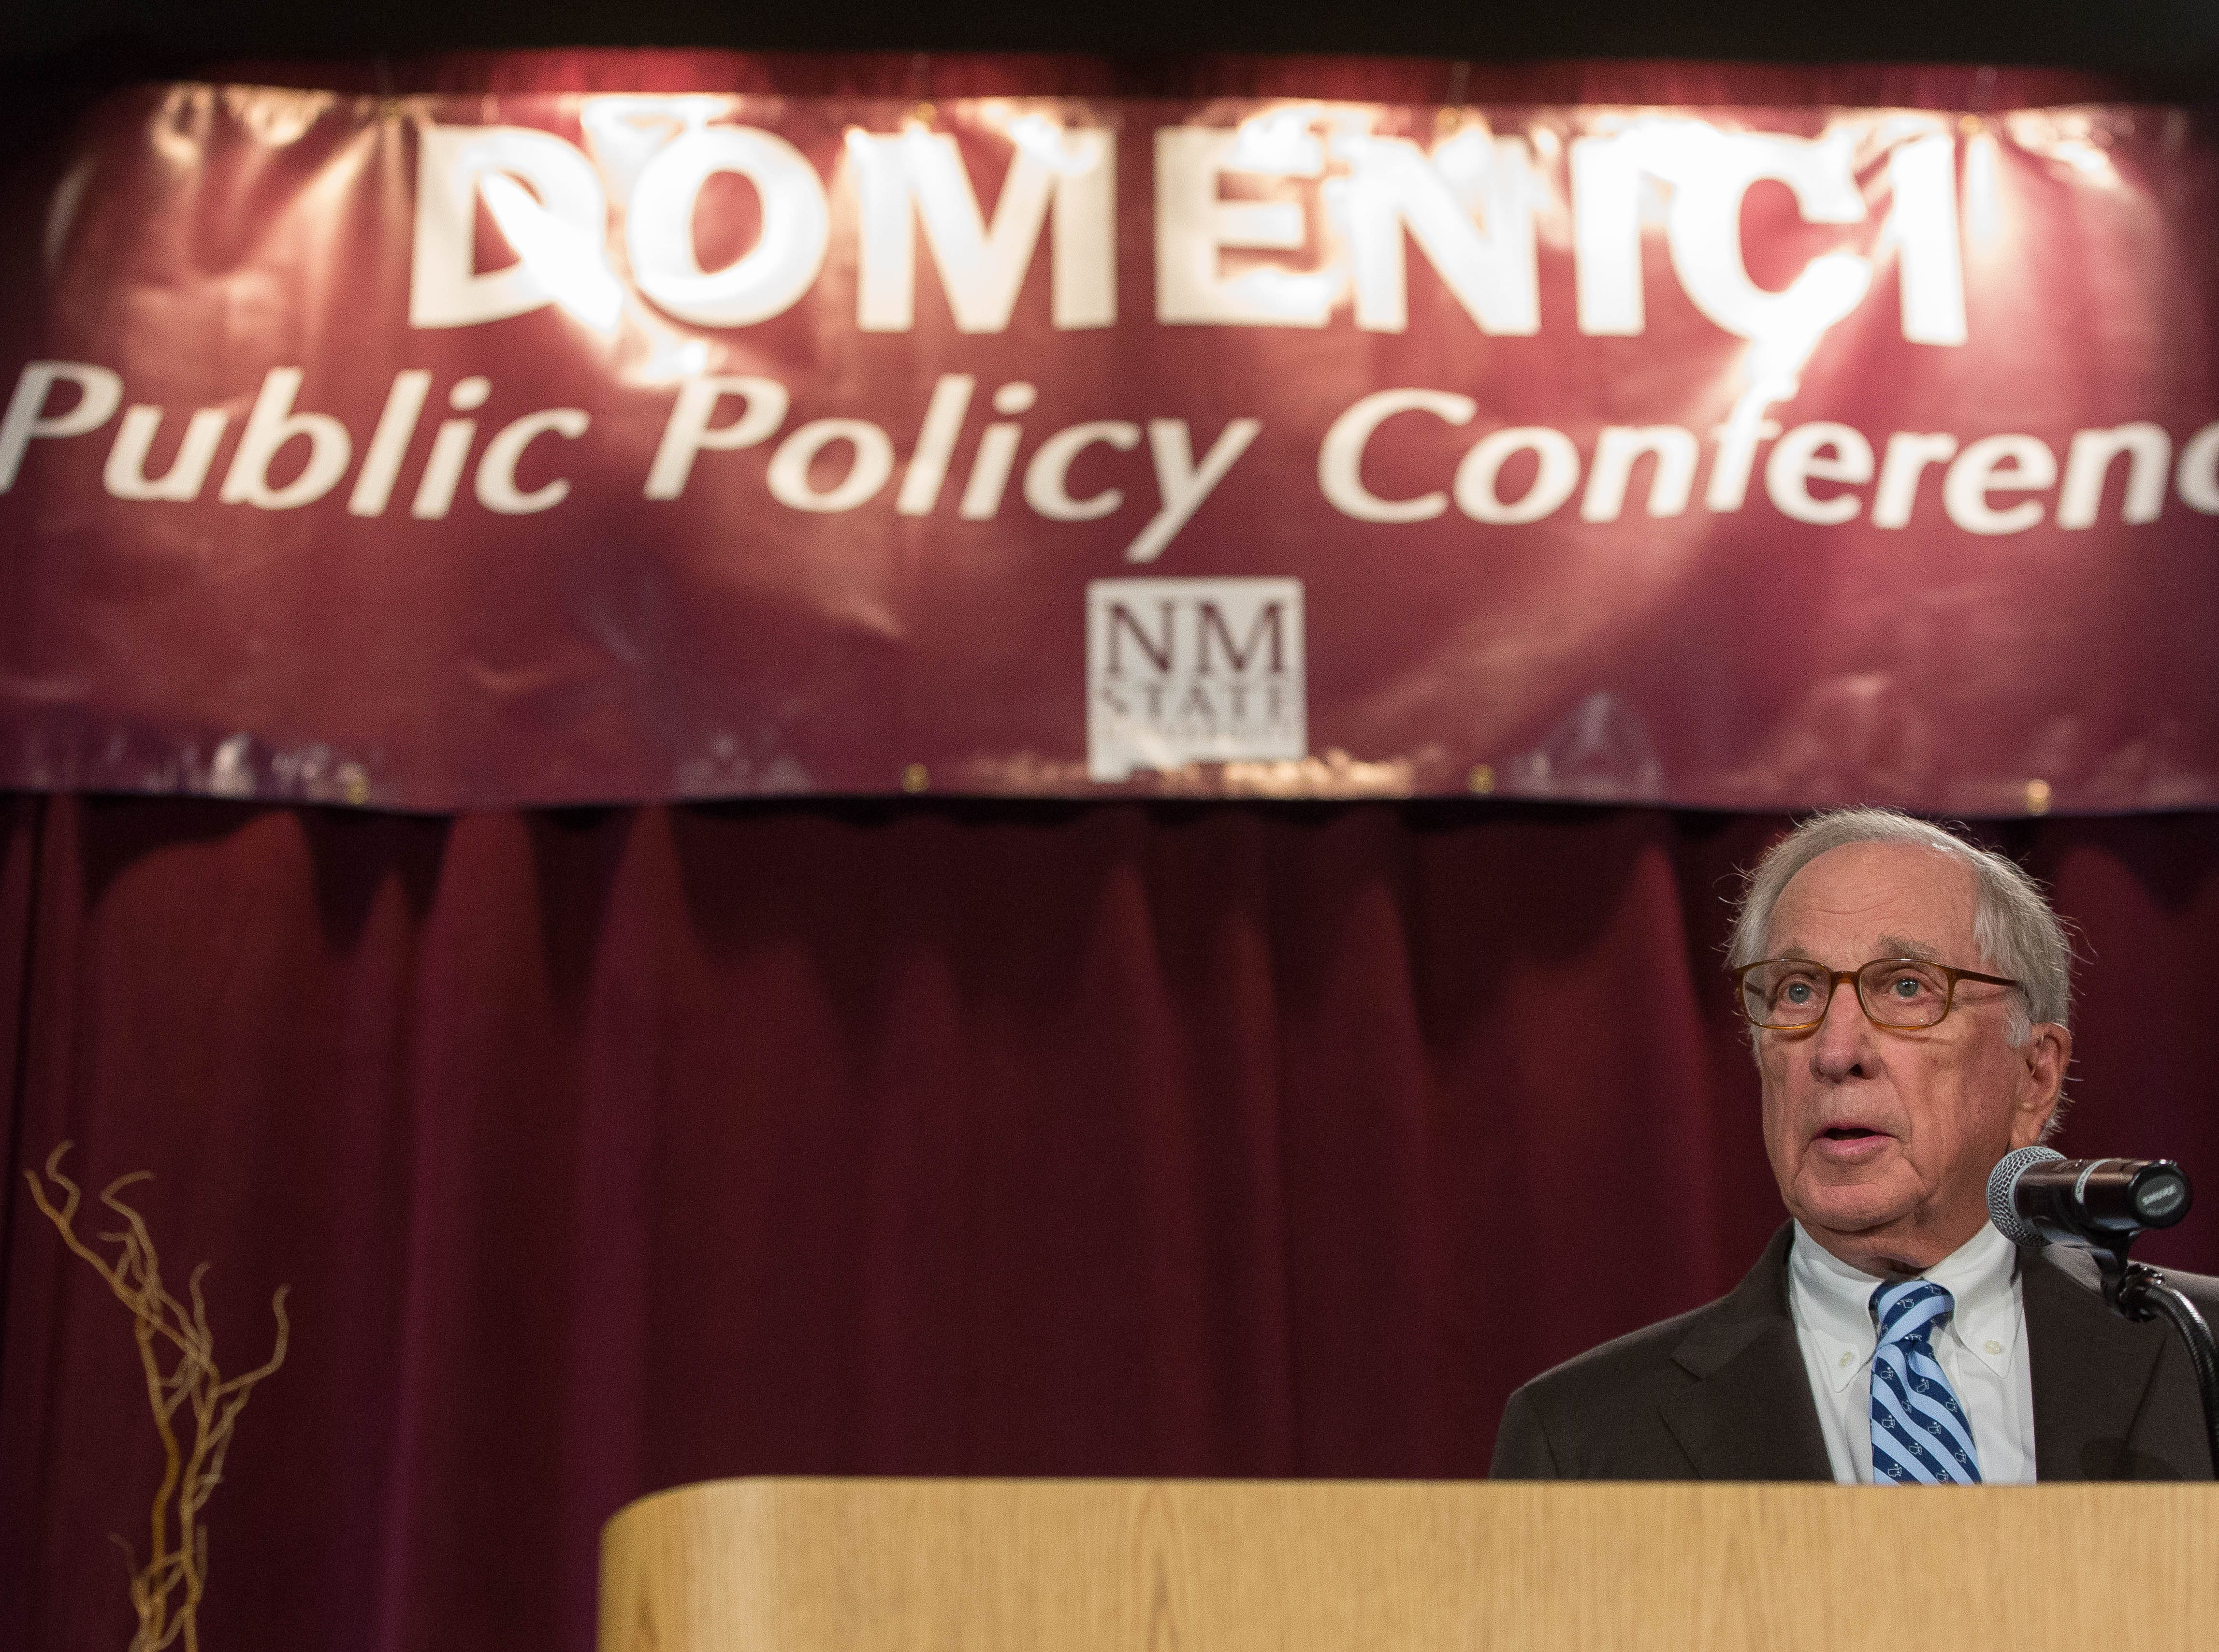 Sam Nunn, former senator from Georgia, speaks about his friend, the late Sen. Pete Domenici, during the 2018 Domenici Public Policy Conference at the Las Cruces Convention Center, Wednesday Sept. 12, 2018.